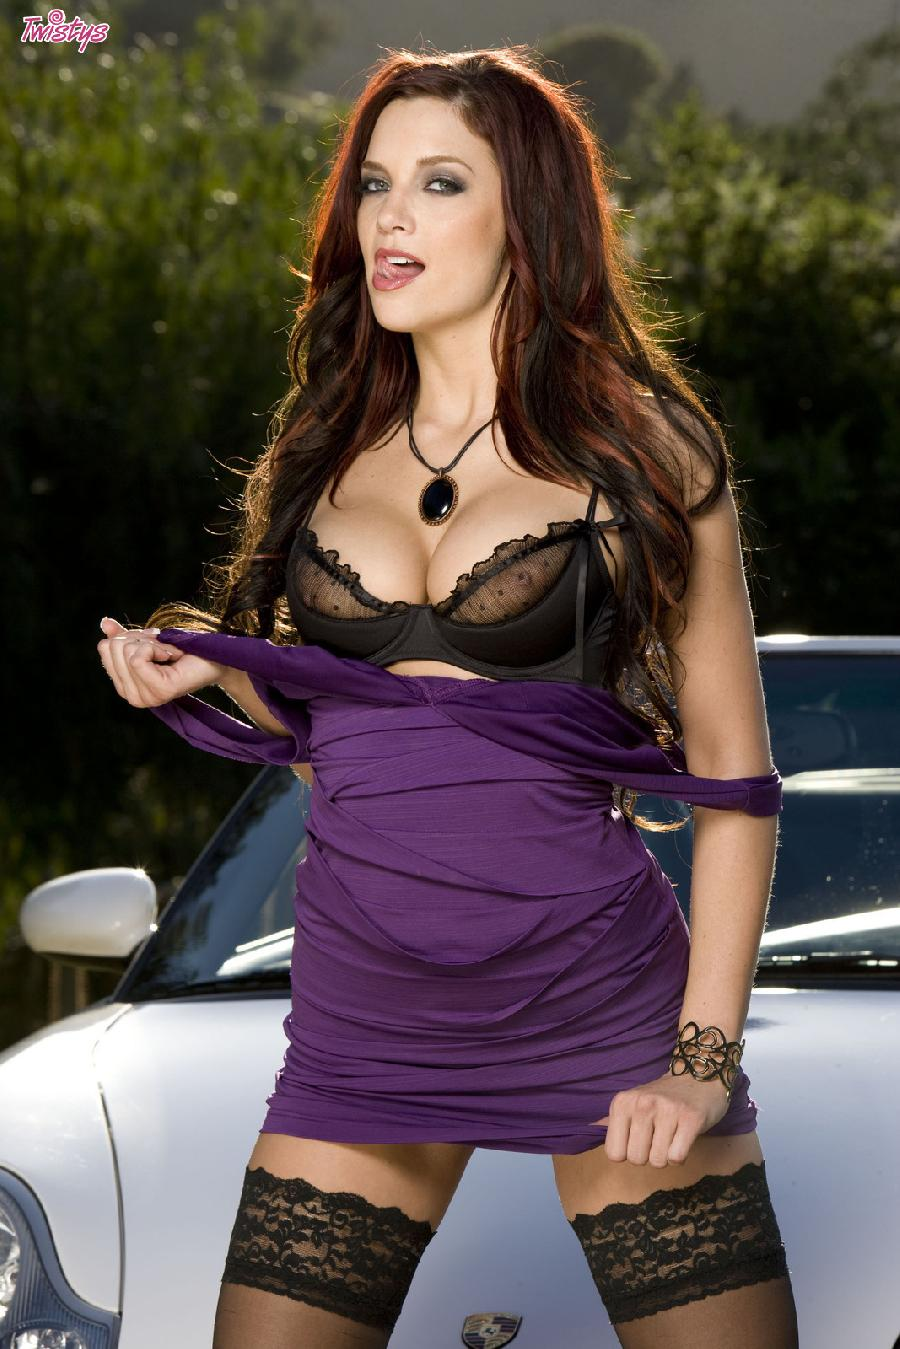 Jayden Cole lace top stockings - 3